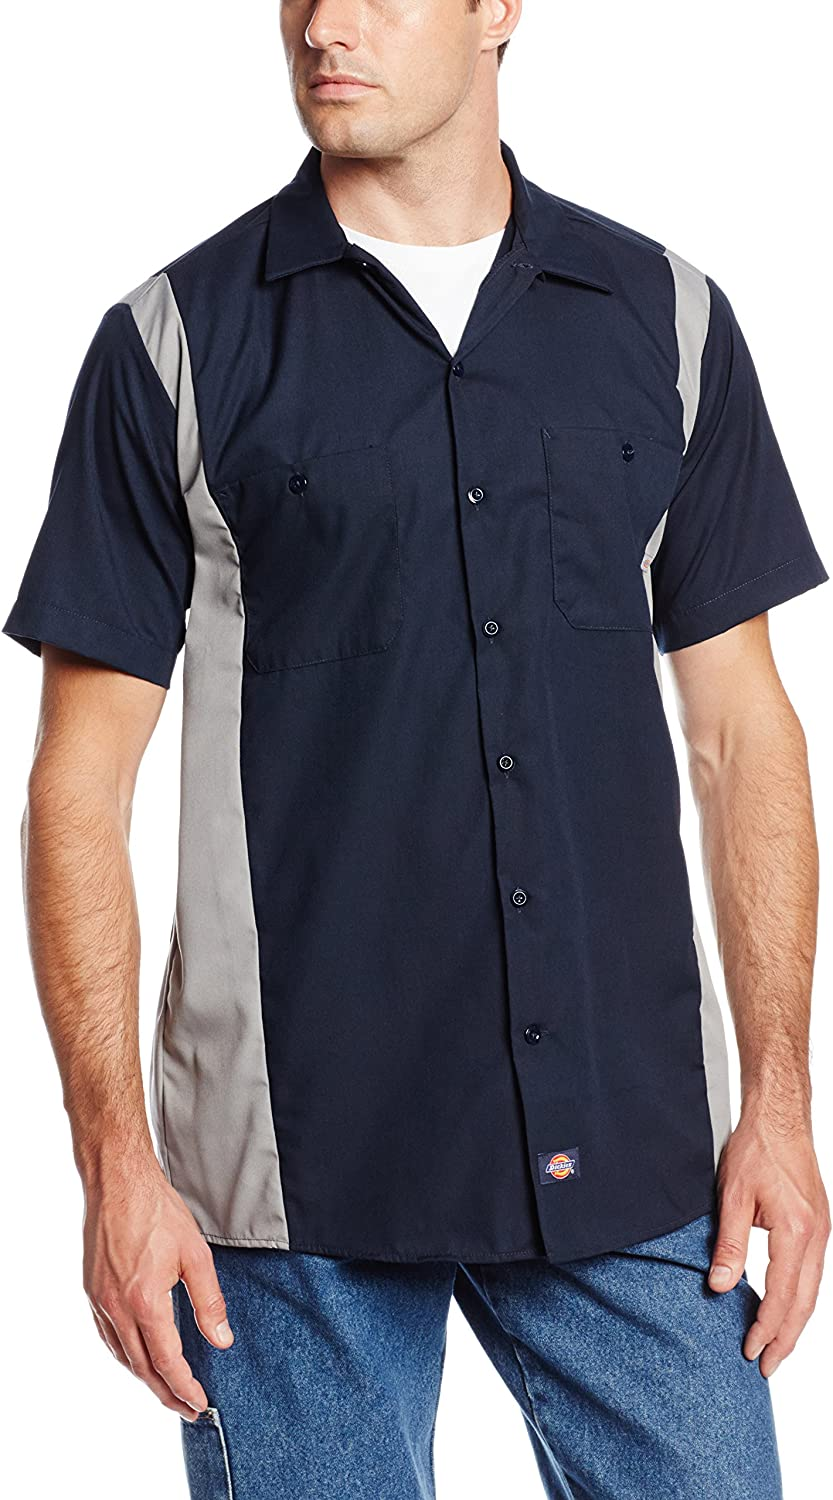 Dickies Occupational Workwear LS524DNSM Free shipping / New Polyester S 2021 model Men's Cotton